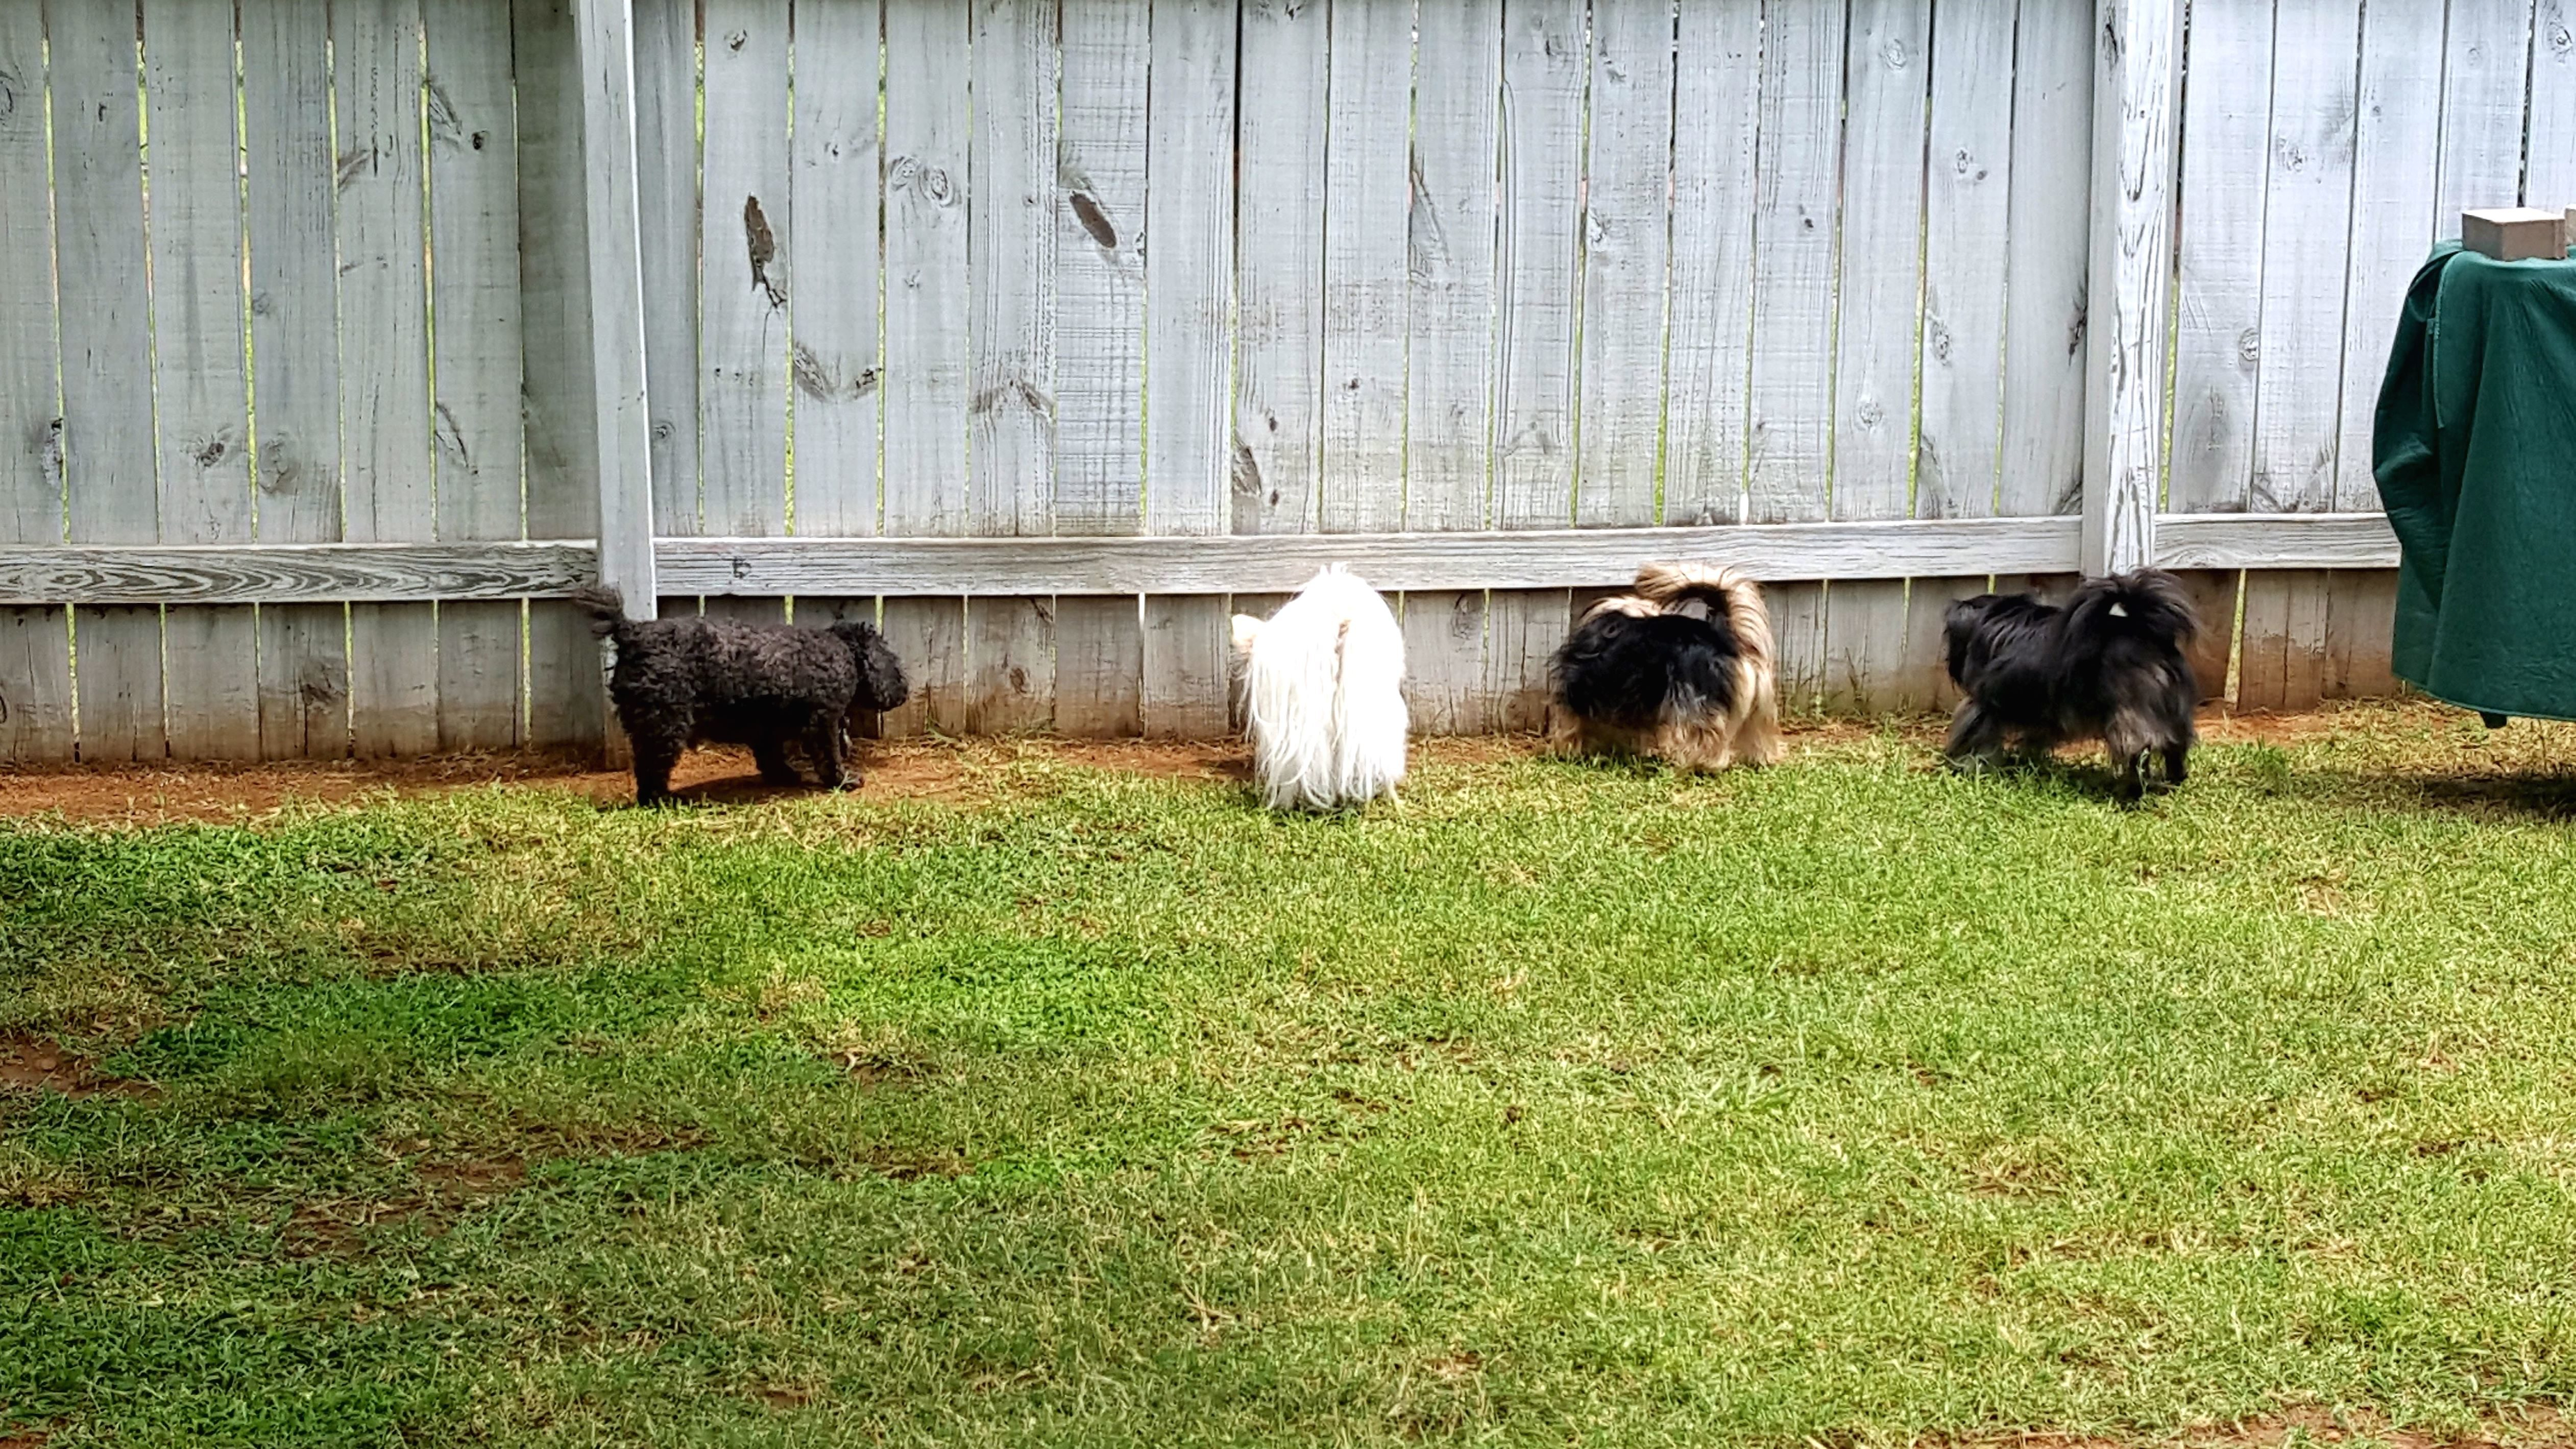 free picture grass fence backyard canine dog dogs lawn pet